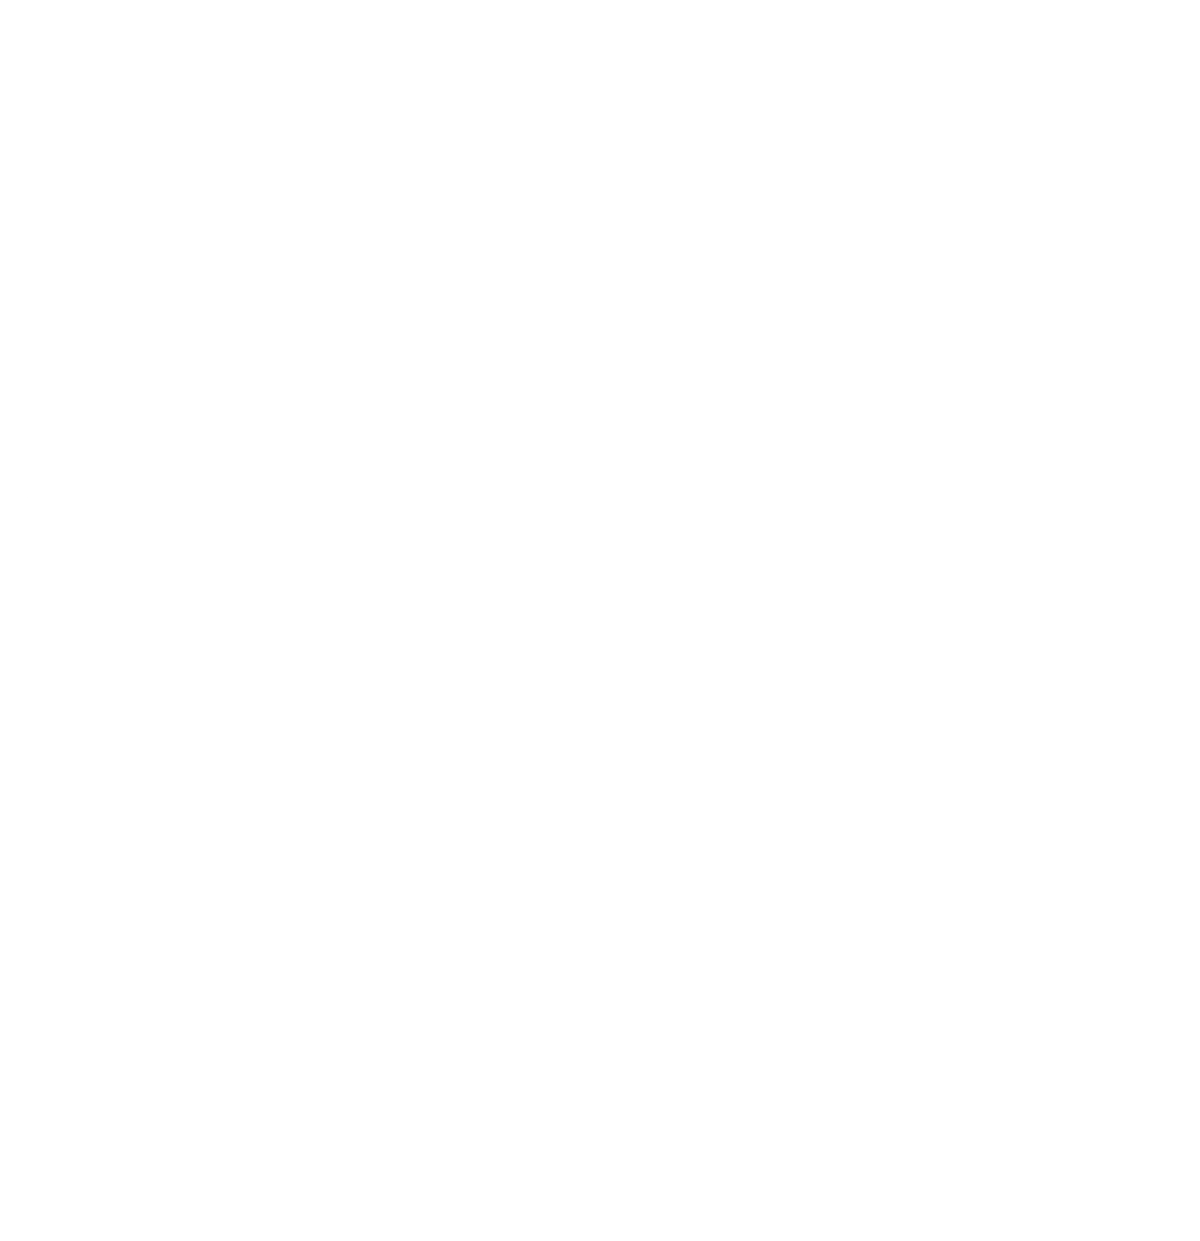 14-Day Trial - Satisfaction Guaranteed